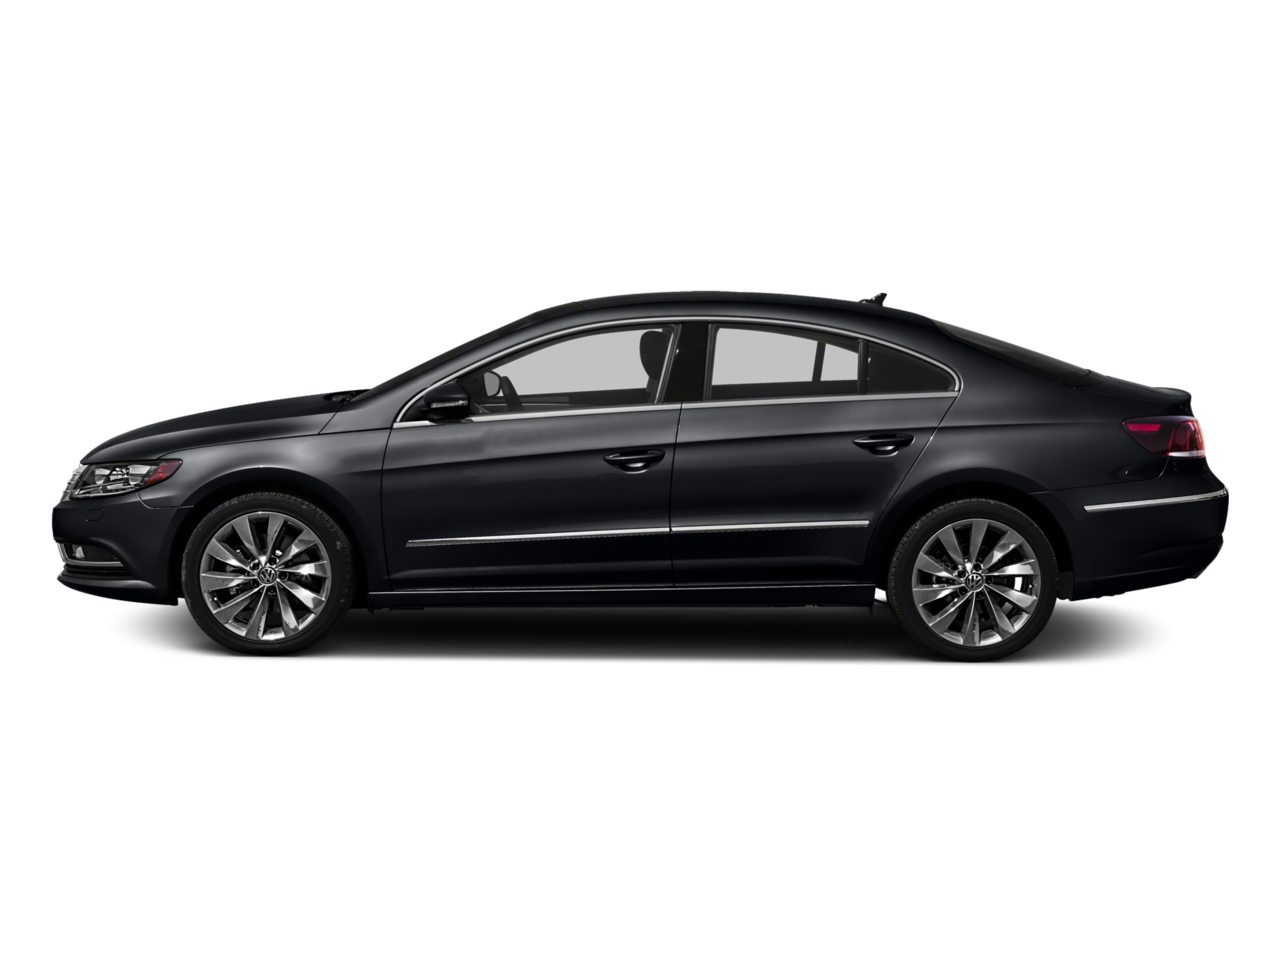 2017 Volkswagen CC Performance Car